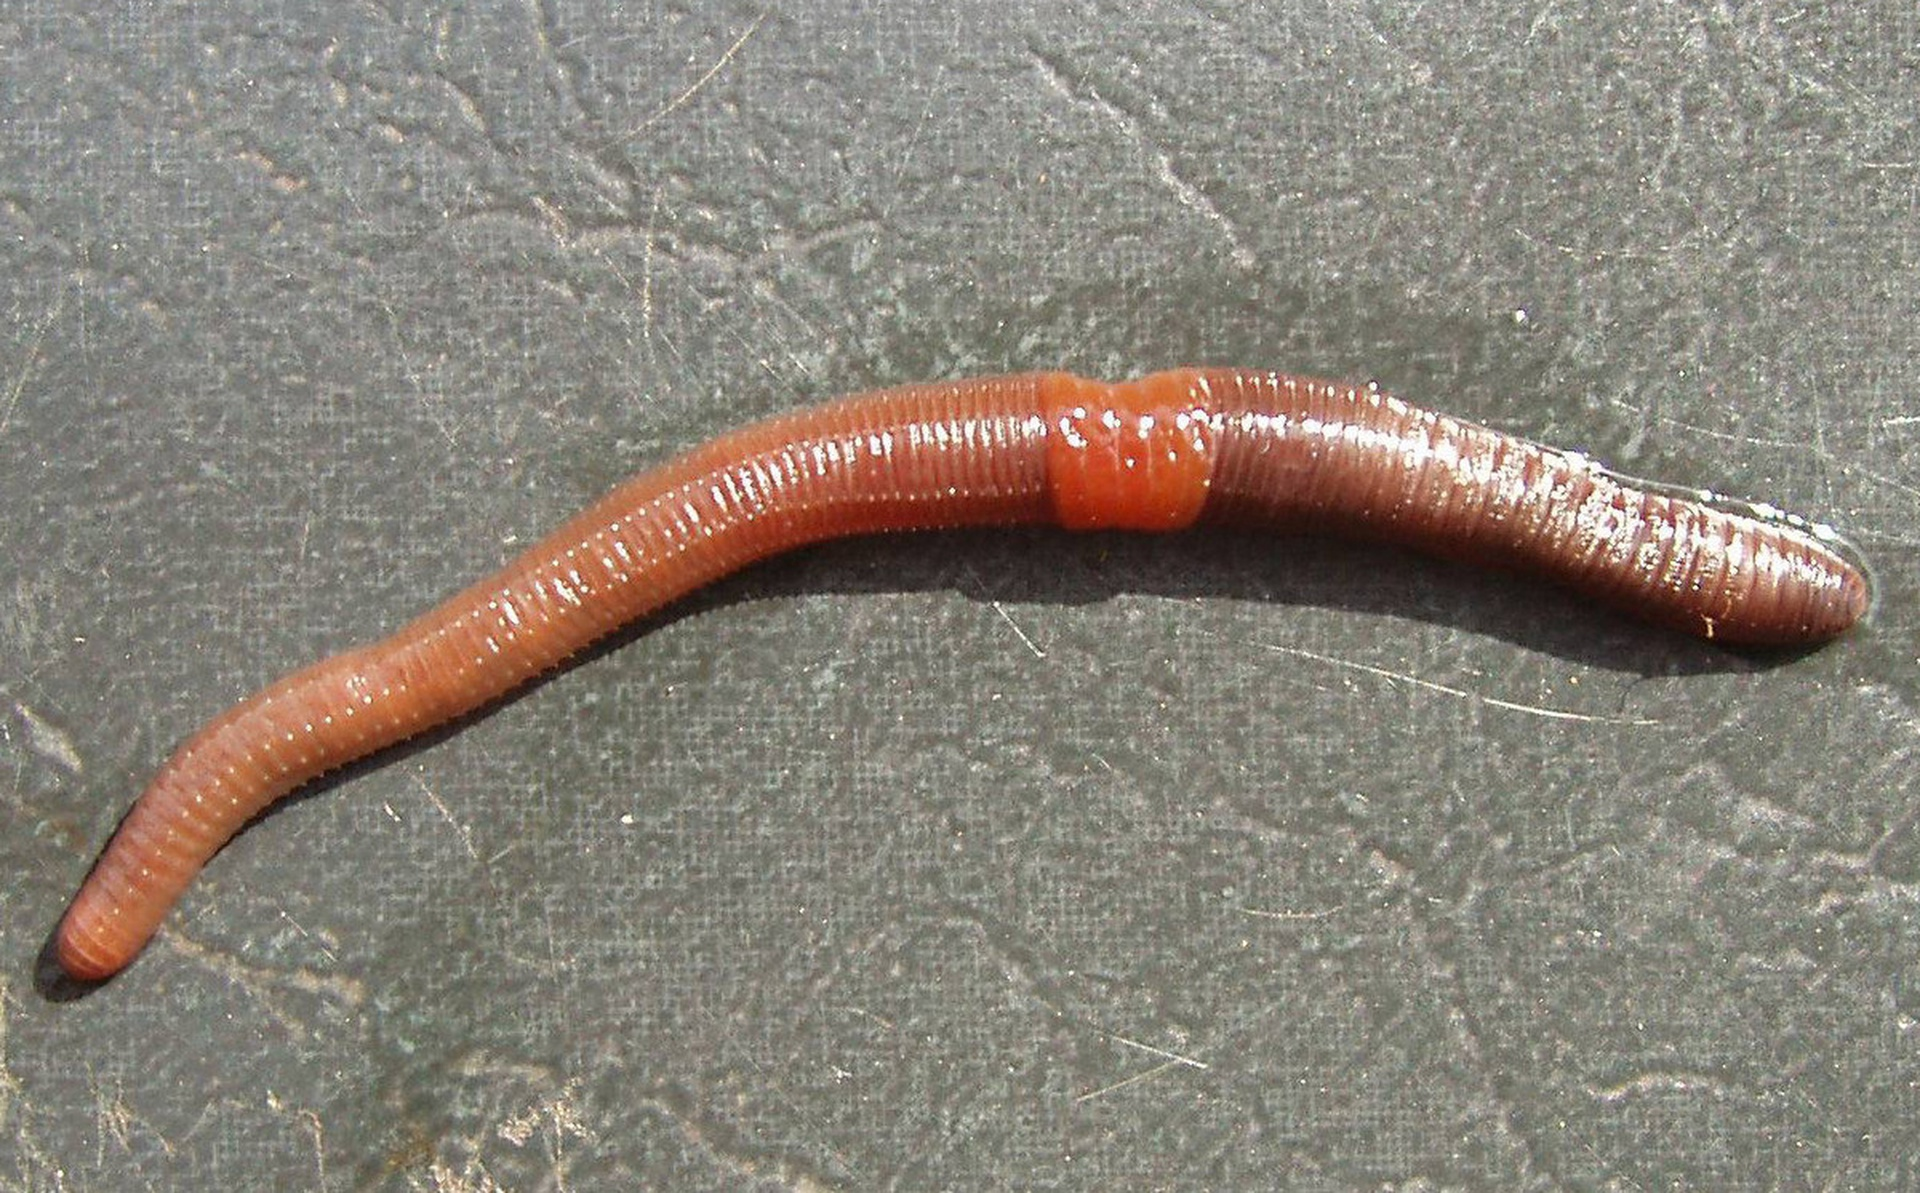 Invasion of the earthworms, mapped and analyzed